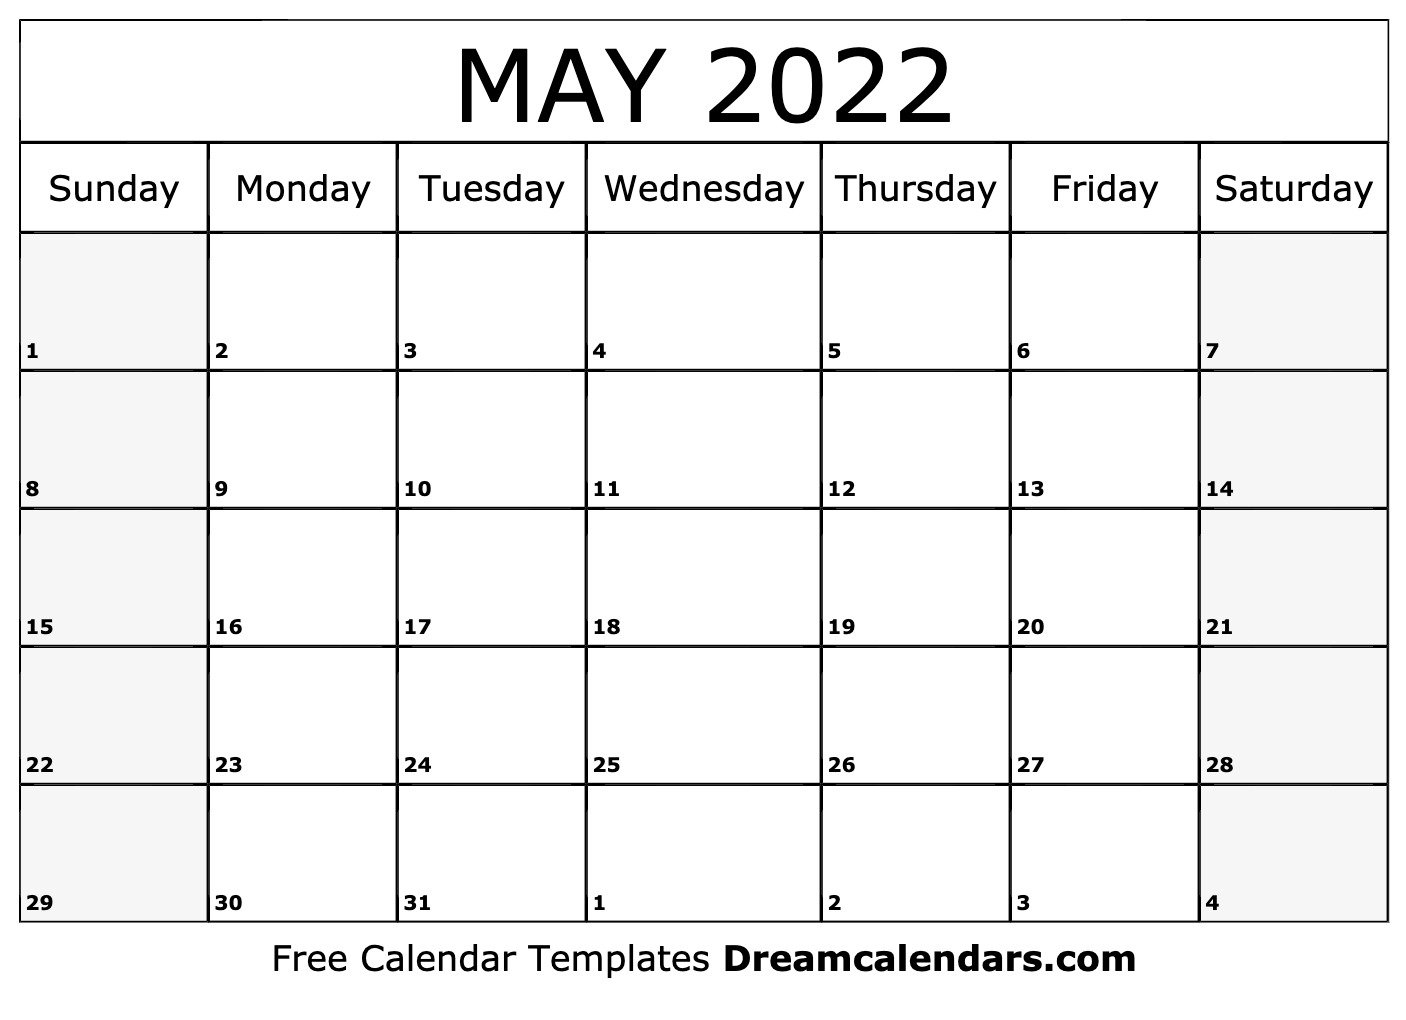 May 2022 Calendar | Free Blank Printable Templates pertaining to 2022 2022 Monthly Planner Free Printable Graphics